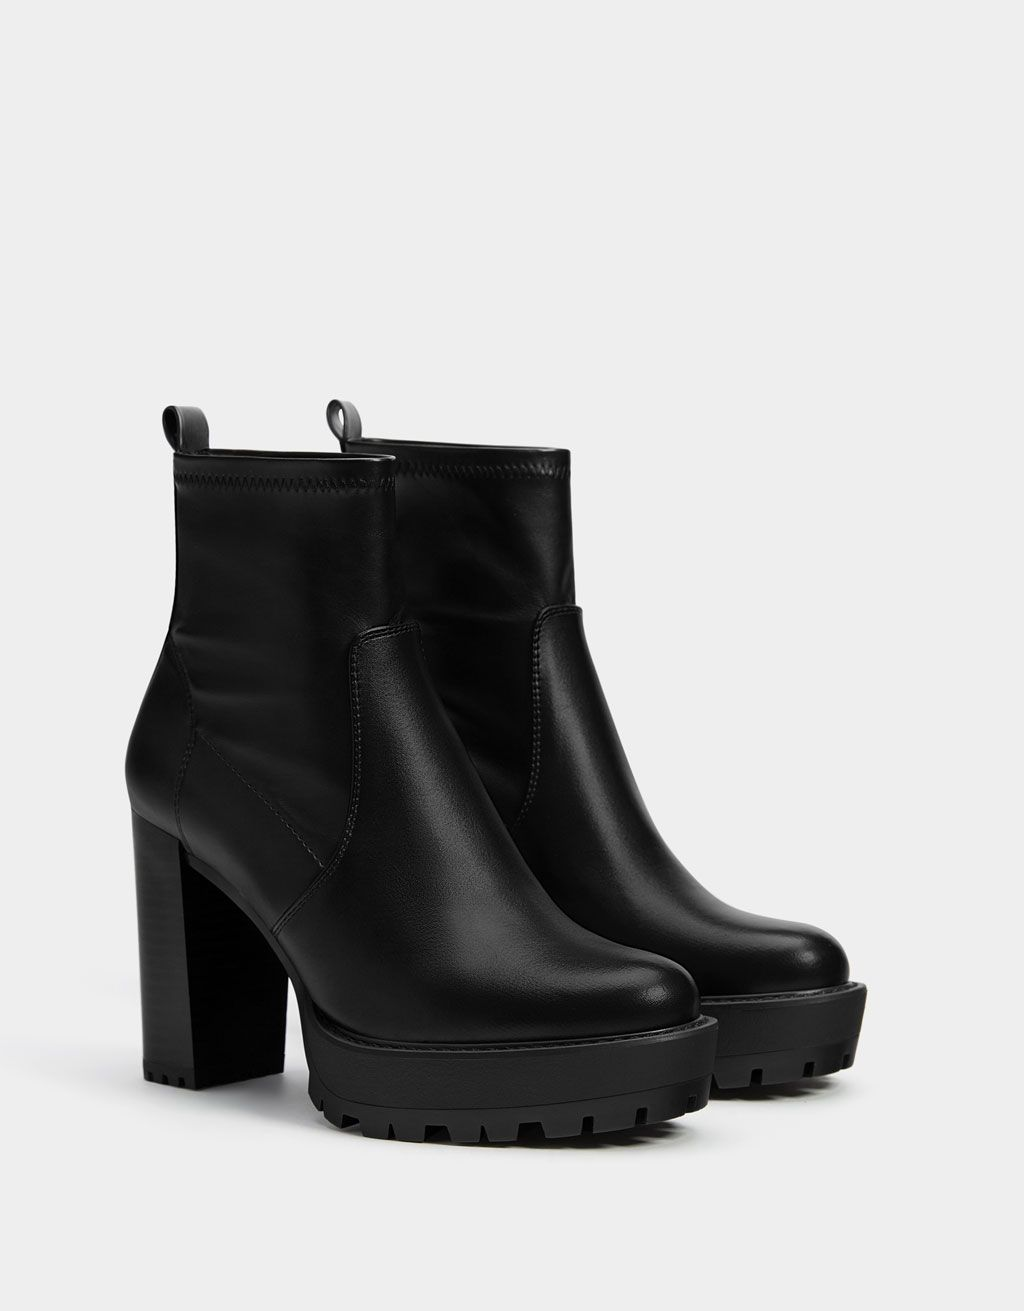 6b0789c94fa Platform high-heel ankle boots in 2019 | shoes | Shoe boots, Boots ...